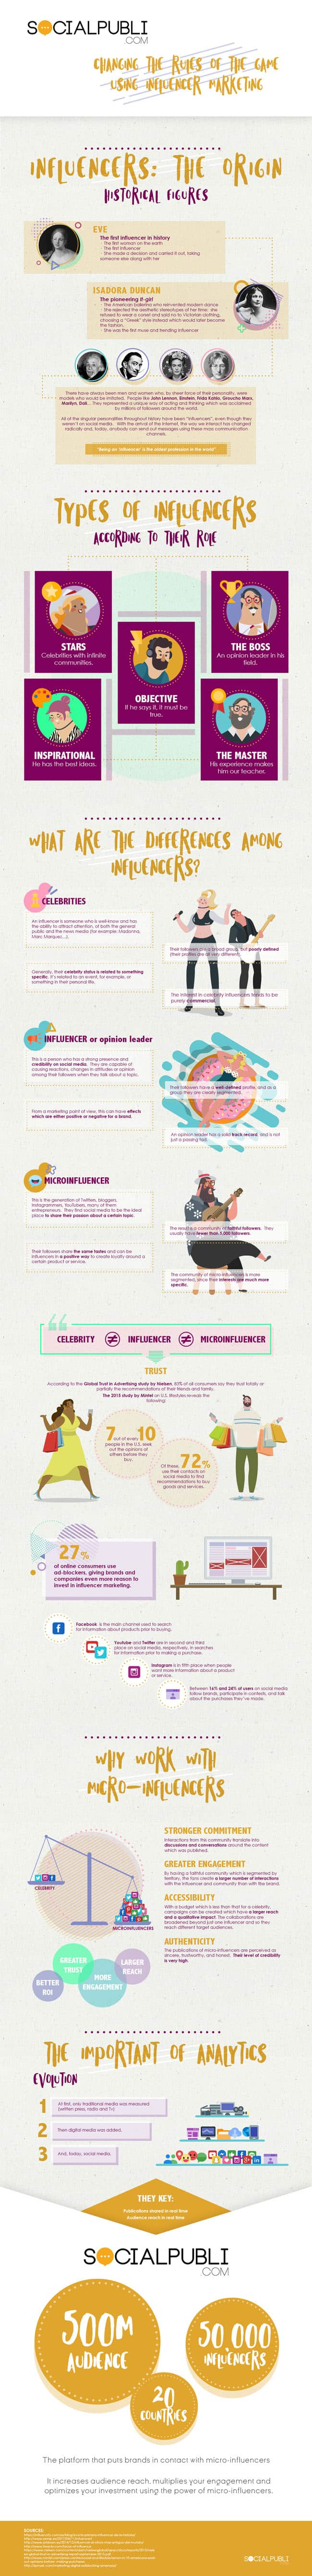 Micro-influencers Infographic